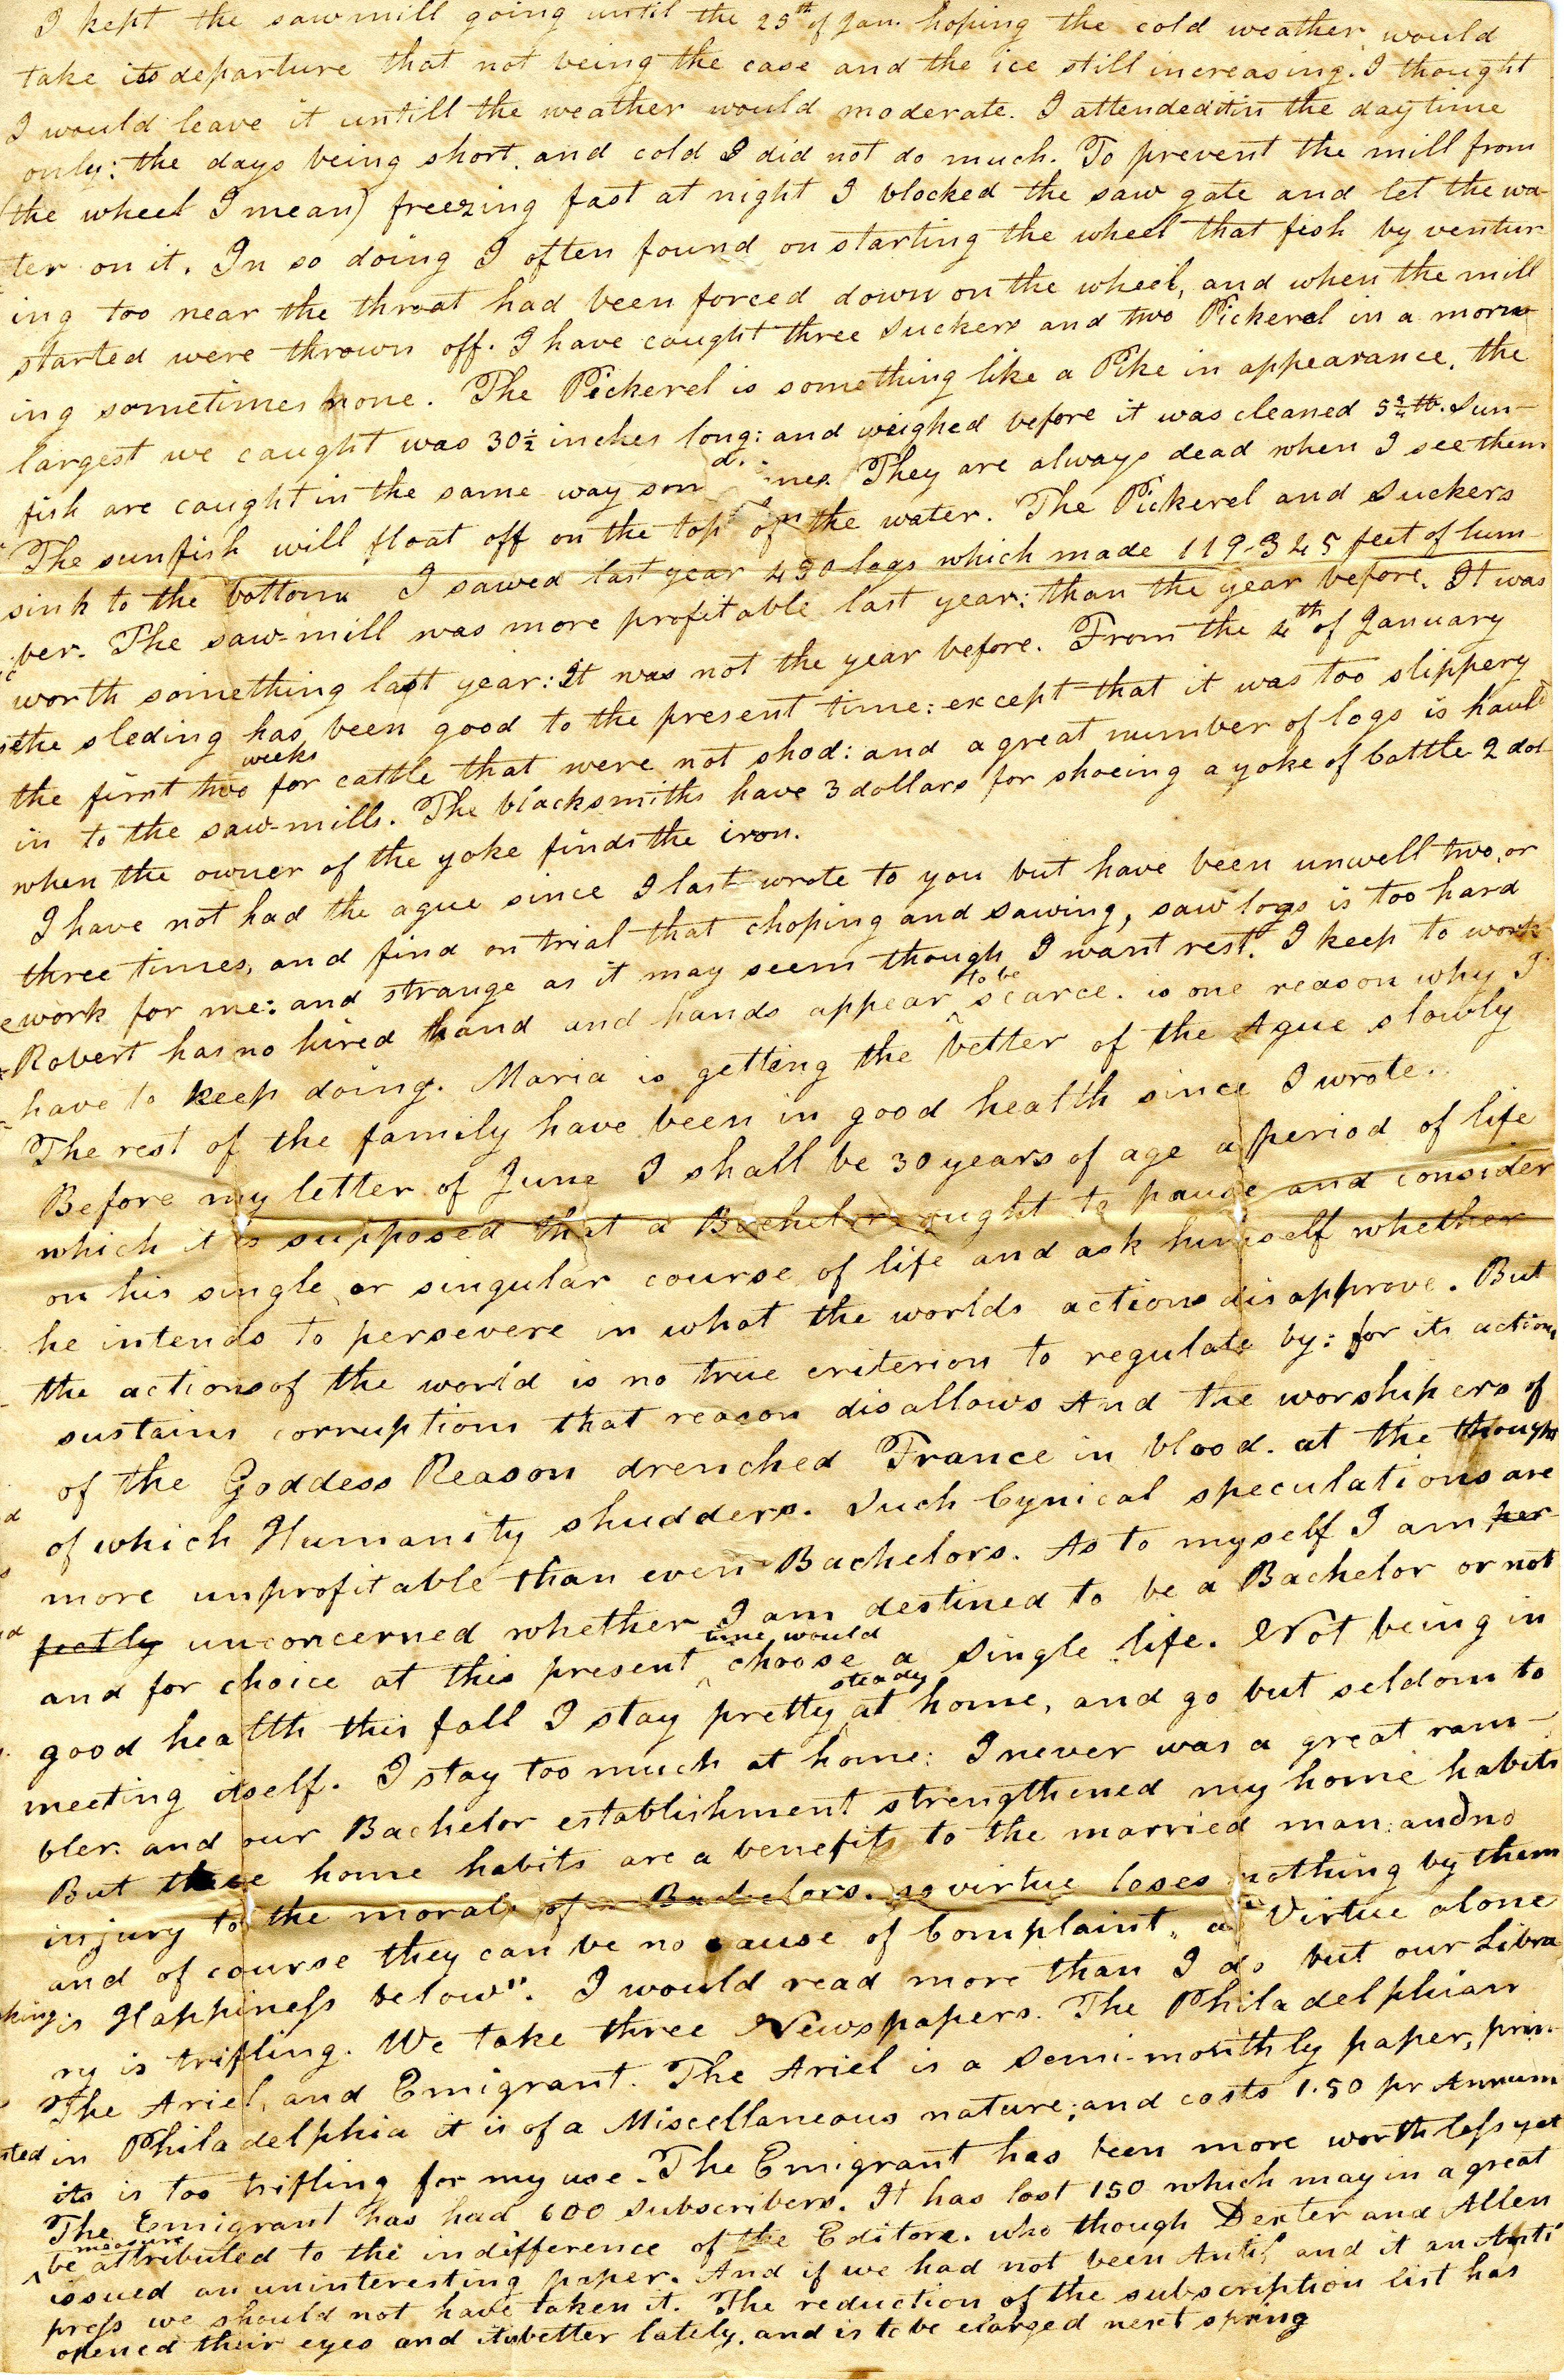 Letter From John Geddes to William Geddes, January 31, 1831 image